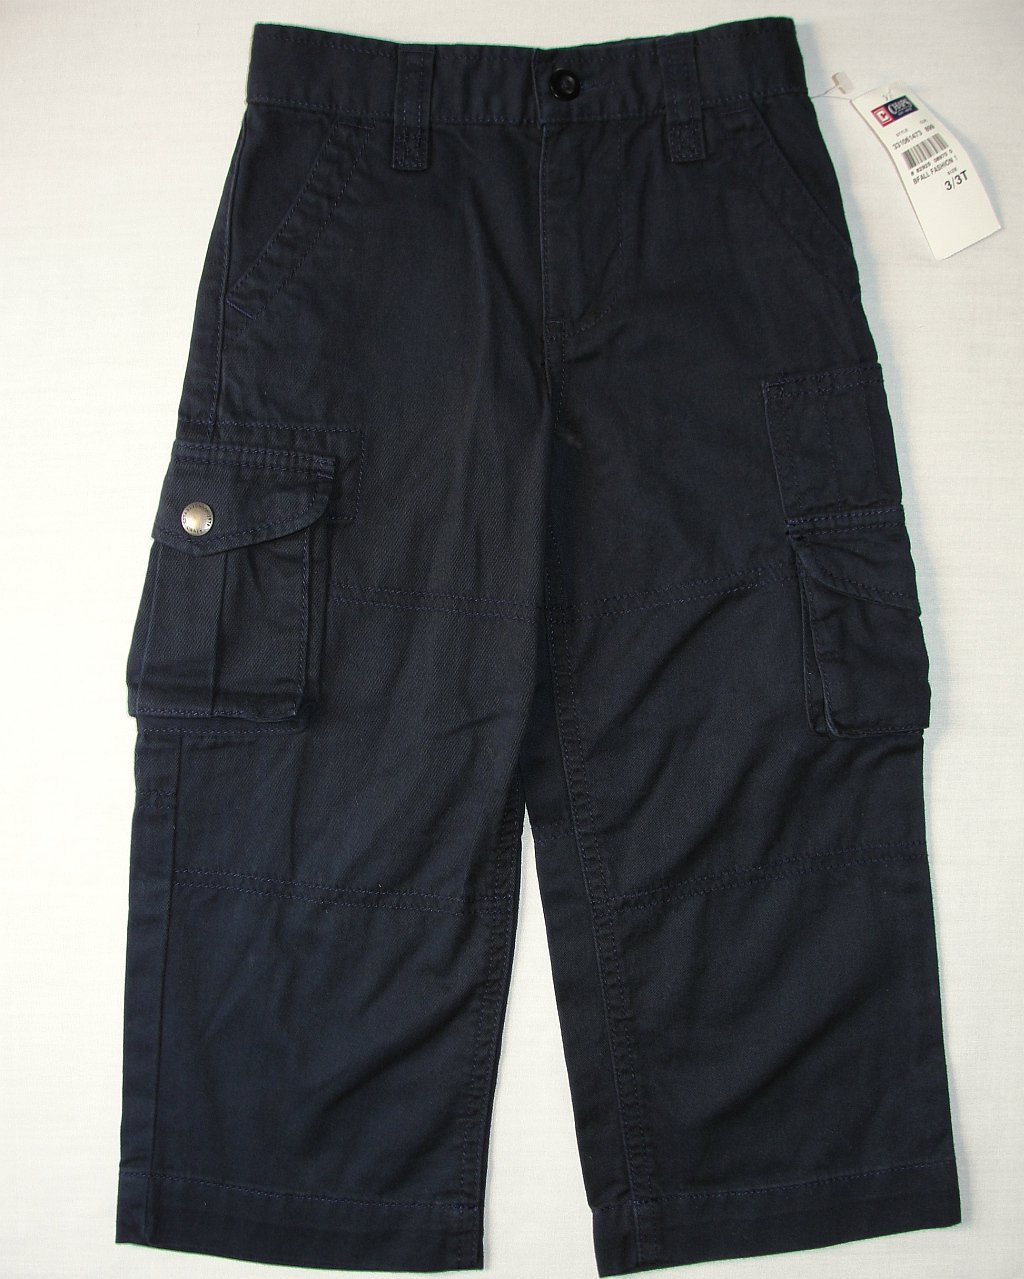 CHAPS Boy's Size 3/3T Navy Blue Cargo Pants, NEW, NWT